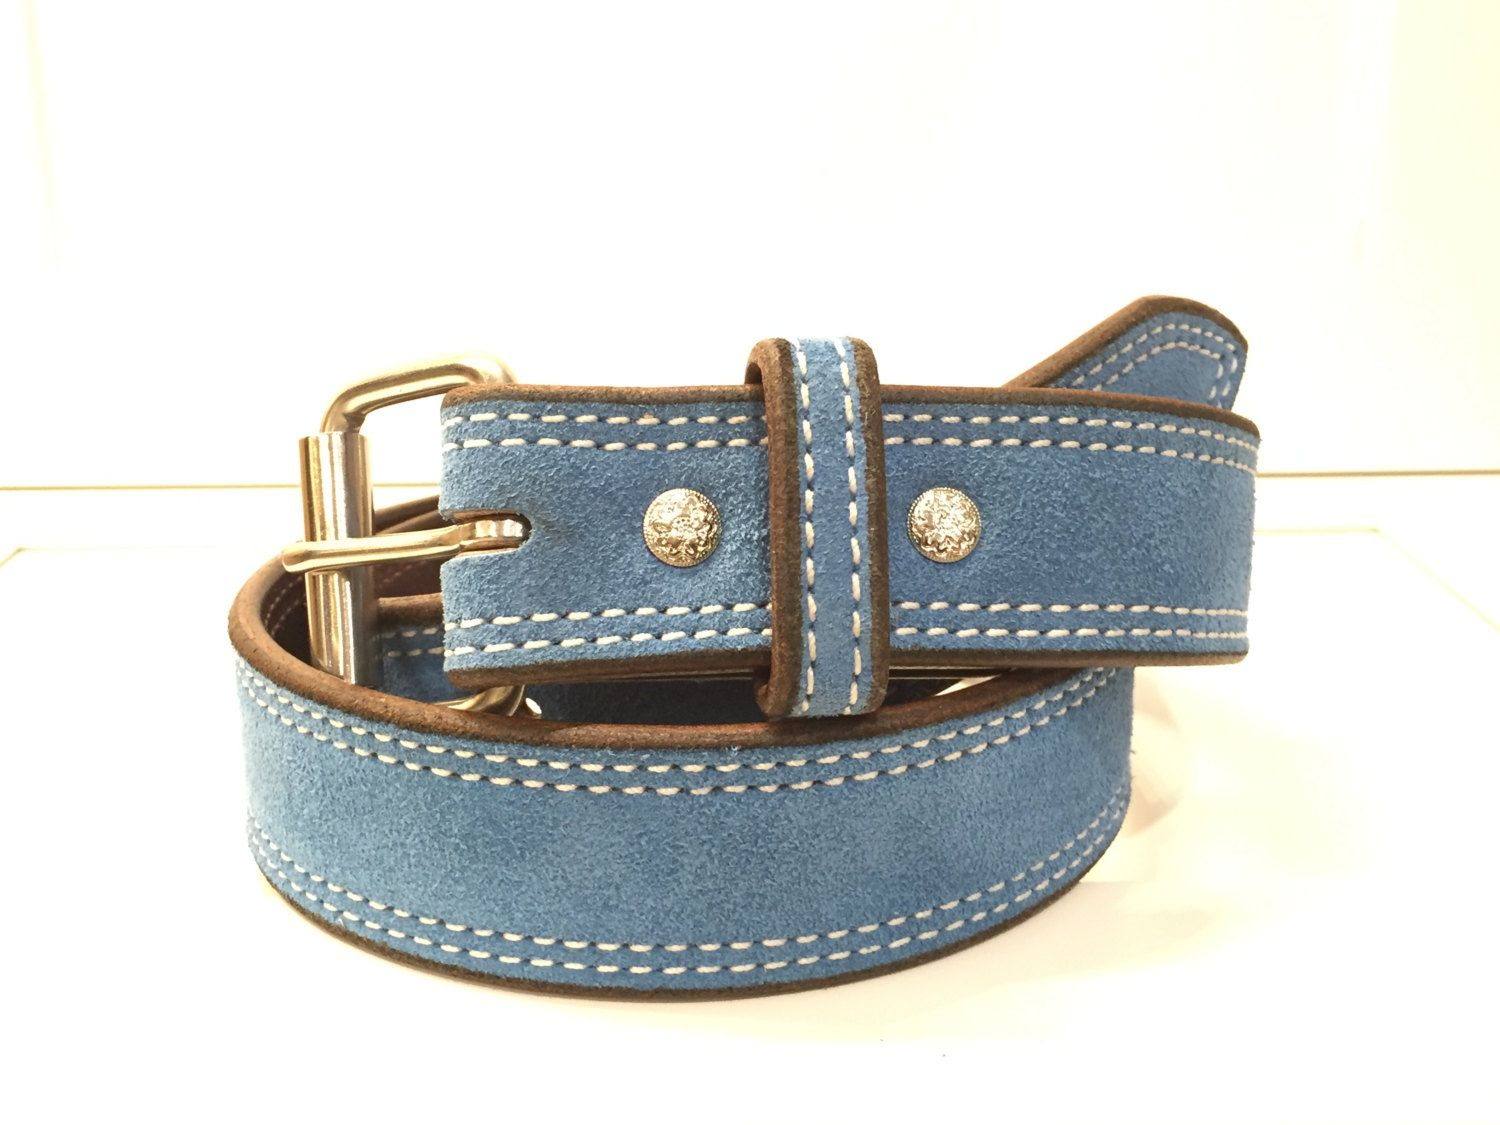 Sky Blue Suede Belt, Sky Blue Leather Belt,Sky Blue Belt, Blue Suede Belt, Blue Leather Belt, Blue Belt, Light Blue Belt, Unisex Belt by JEllisLeatherDesigns on Etsy